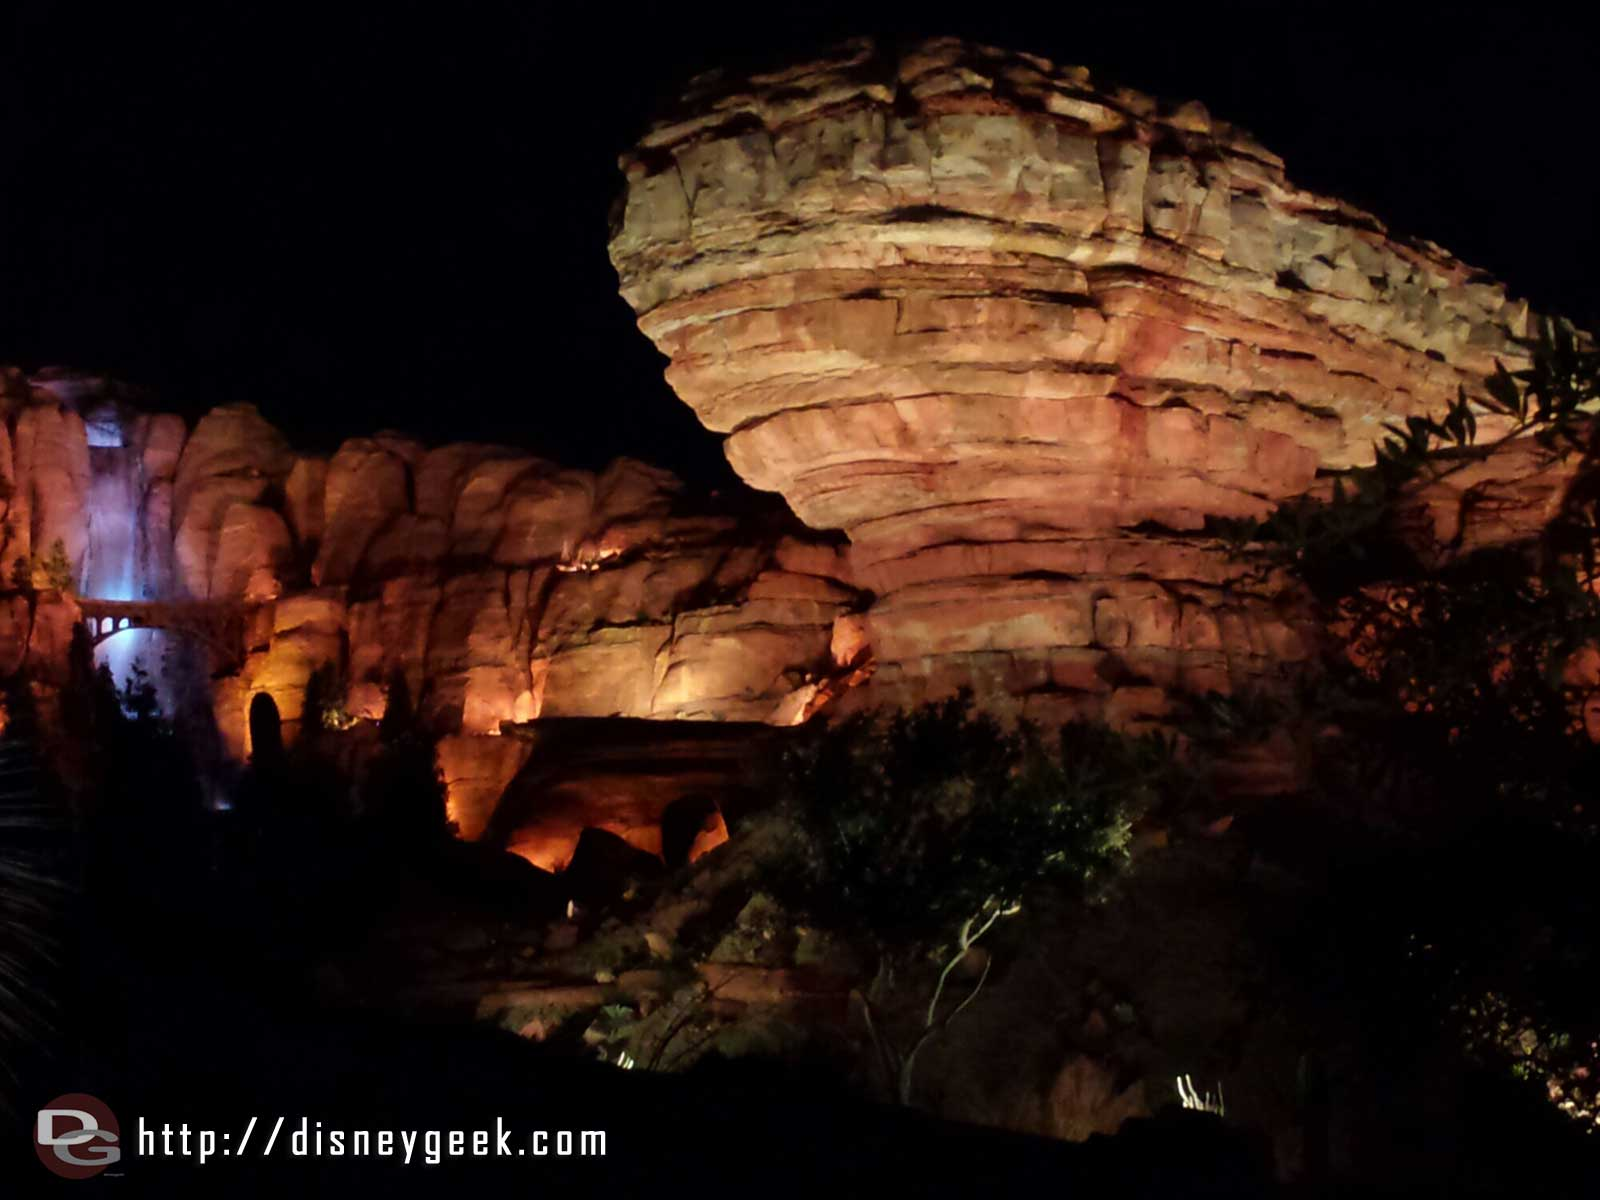 Willy's Butte & Firewall Falls this evening #CarsLand